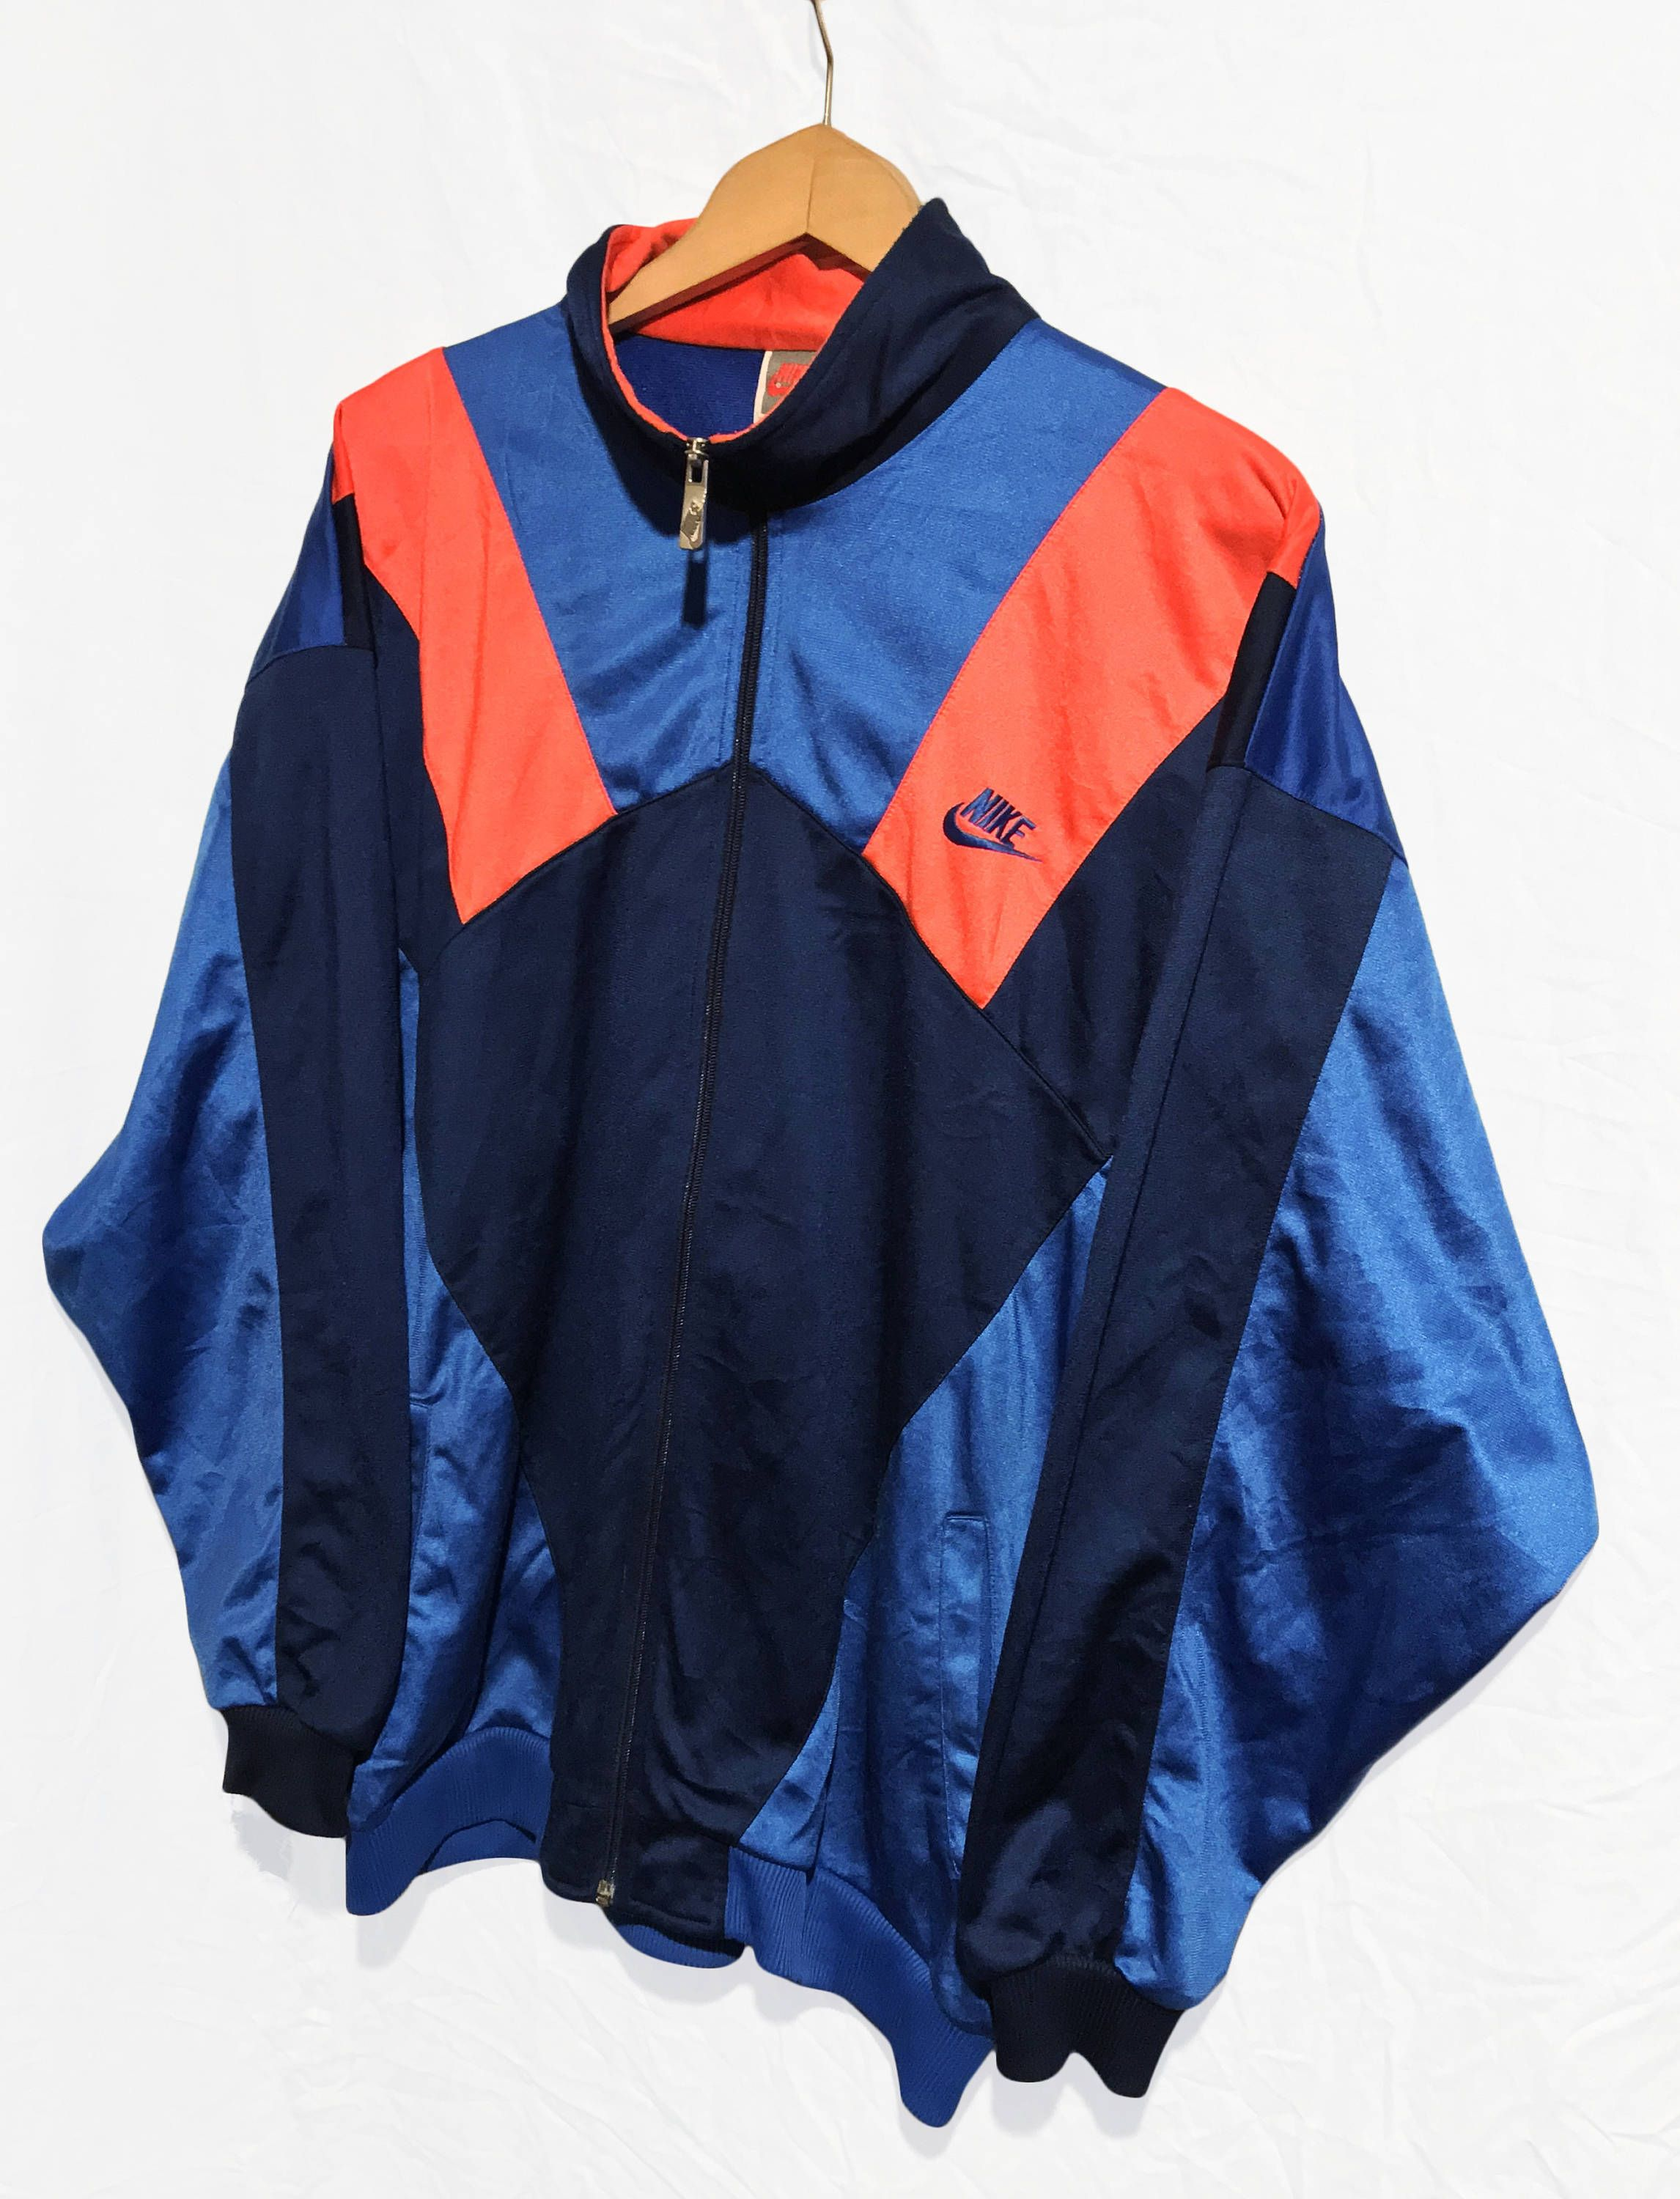 Vintage Nike Swoosh Gray Tag Windbreaker Tracksuit Top jacket Multicolor  Blue Navy Blue Orange Neon Size L by VapeoVintage on Etsy 4cbf4ed7e